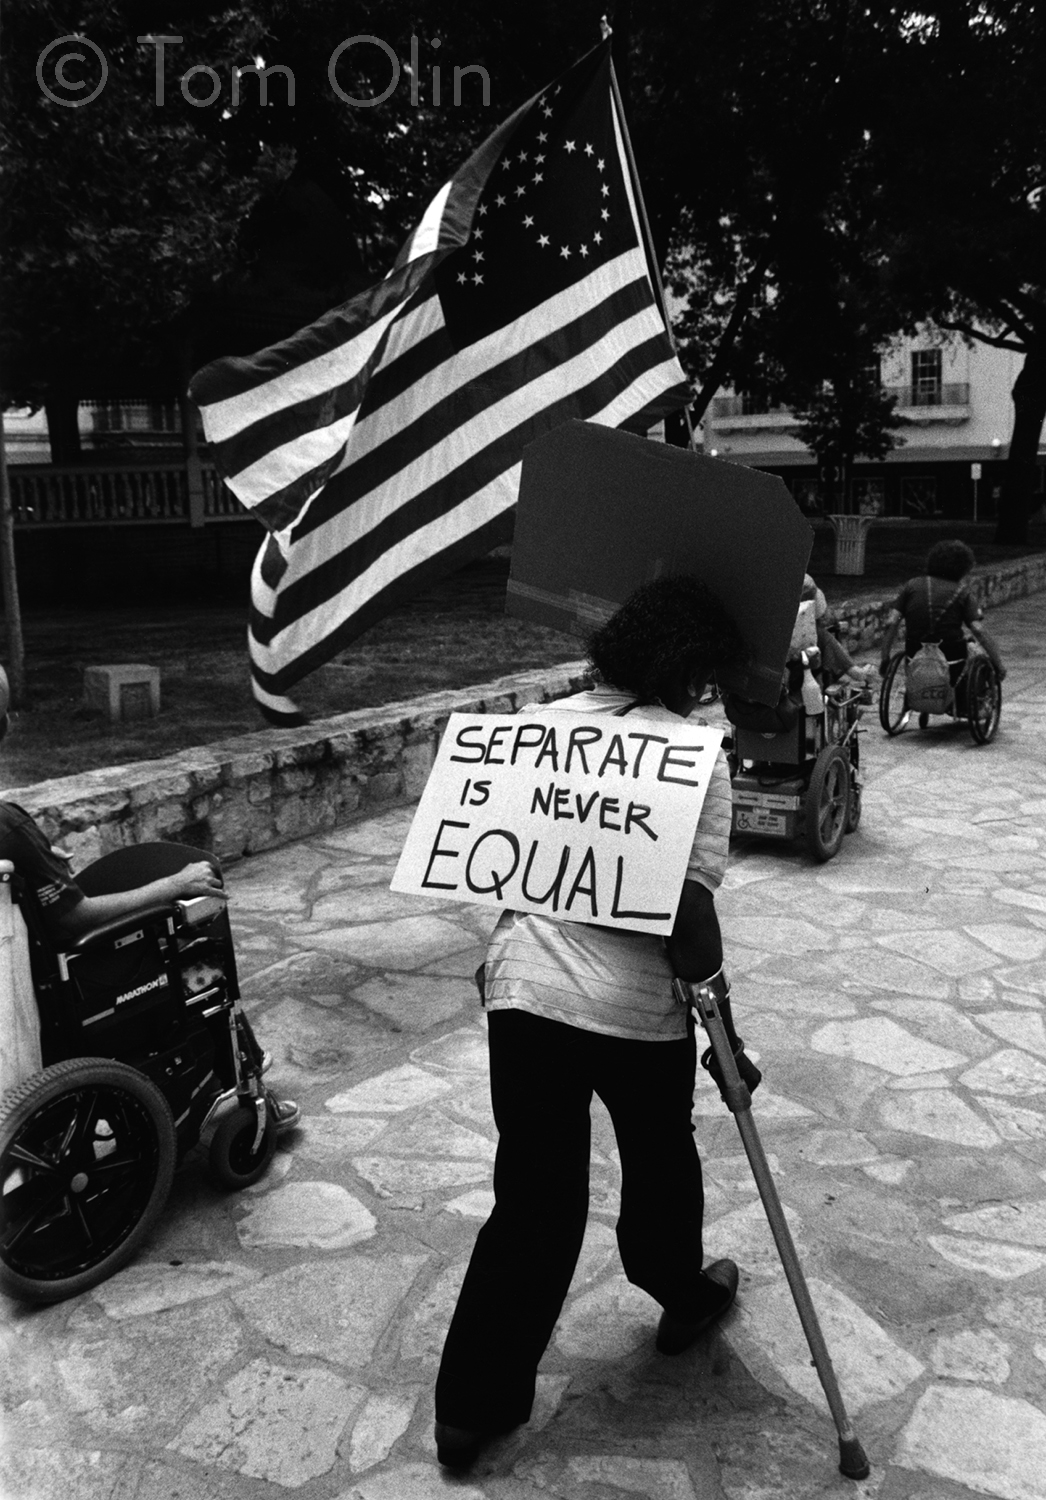 Black and white photograph of several disability rights activists marching on a cobblestone sidewalk. In the foreground, an activist his using a cane and holding a large American flag. Where the fifty stars usually are, there's an outline of the accessibility symbol made of stars. The activist is holding a sign that says separate is never equal. In the background are several people in wheelchairs.